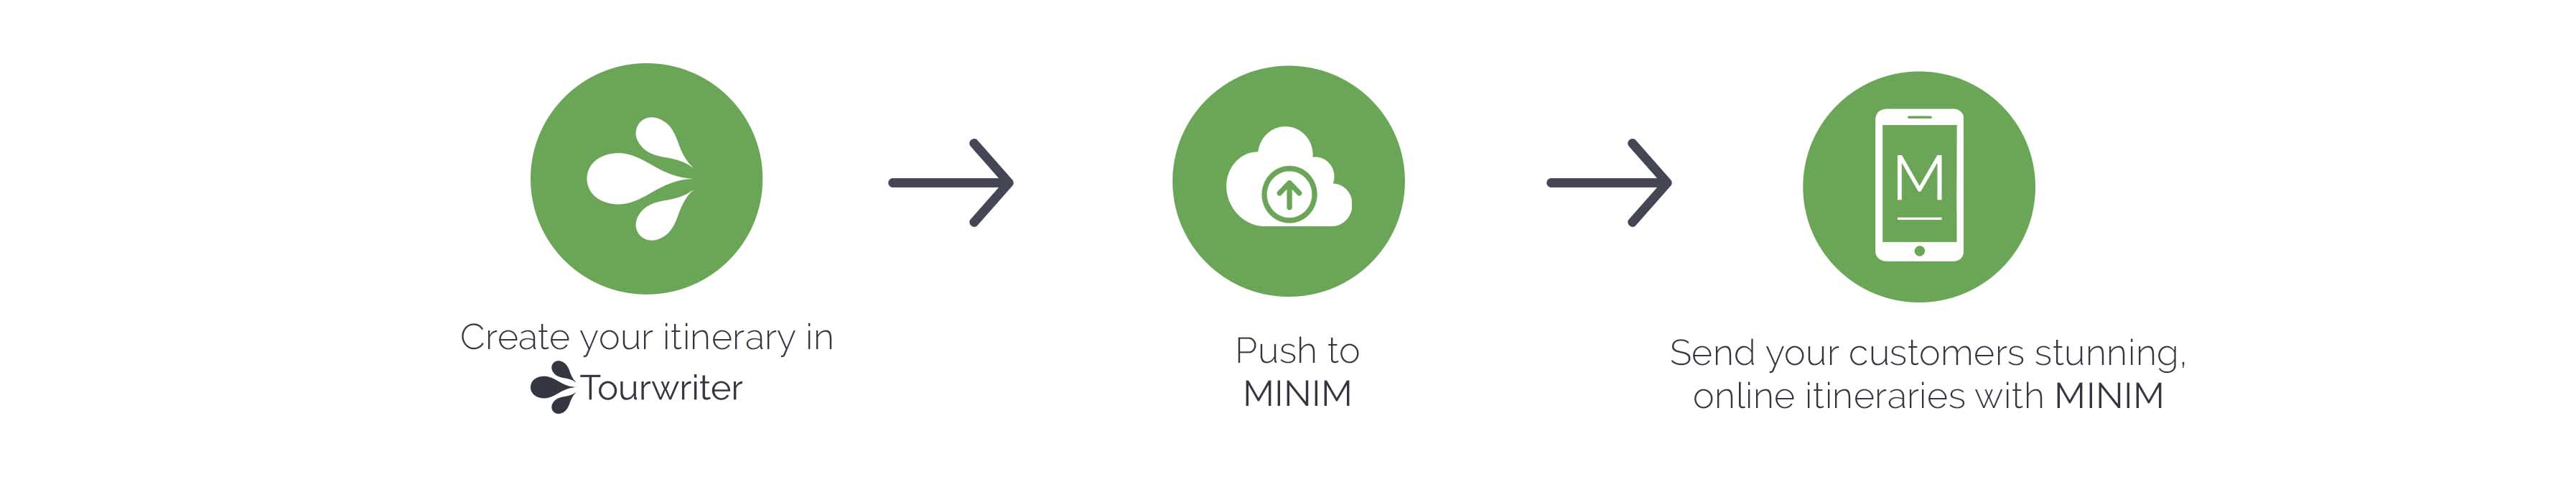 How to use minim